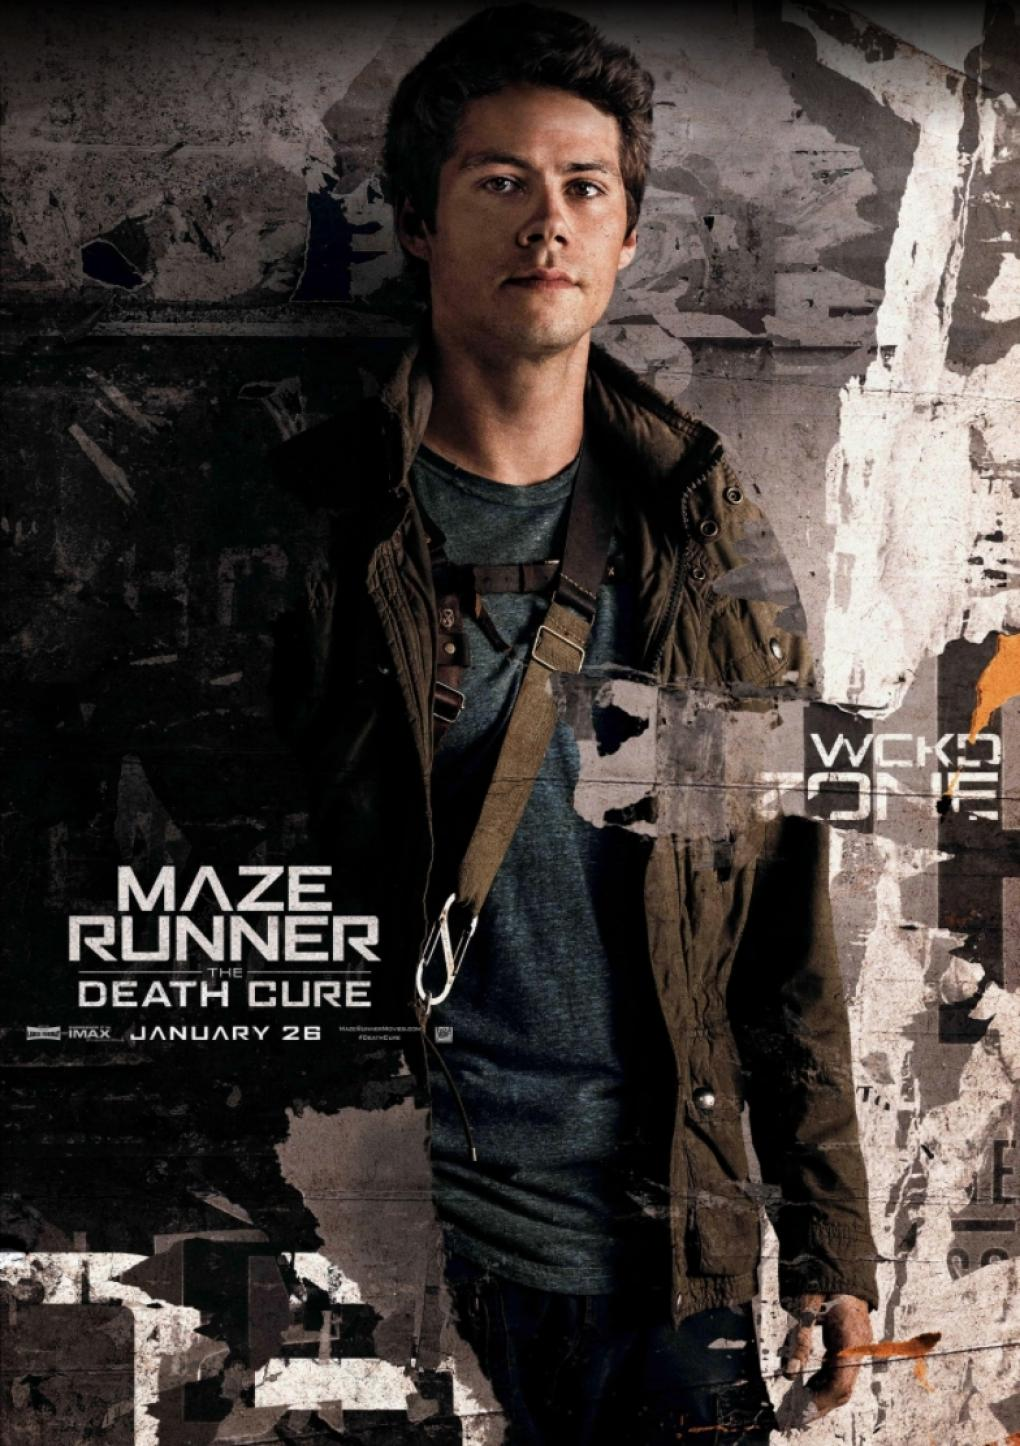 Runner the death pdf maze cure